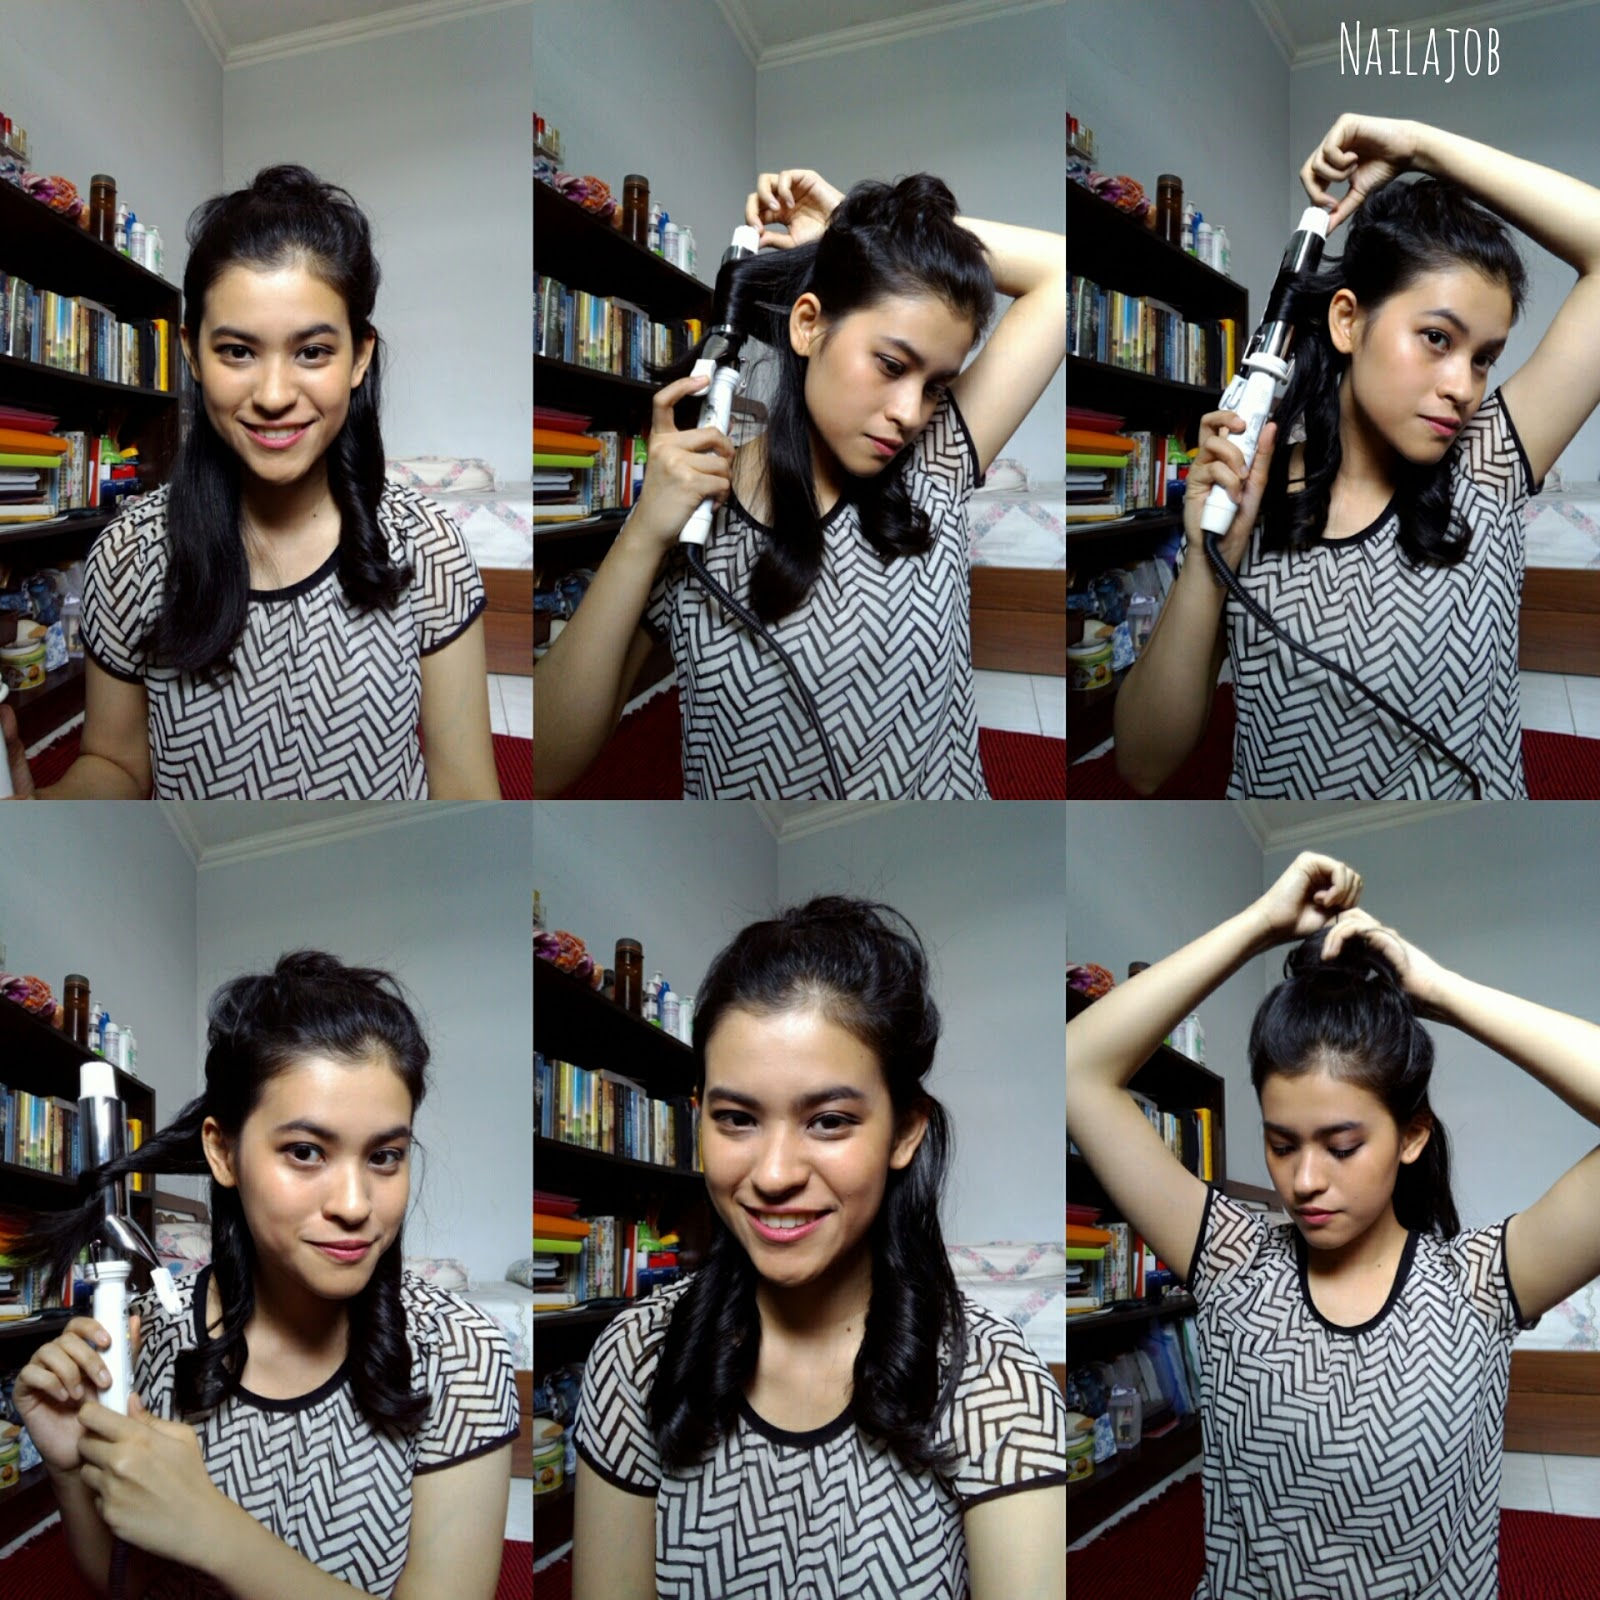 Repit Professional Curling Iron 35 Mm Review Beauty Dgrad Now Let Me Give You A Sneak Peek Of How I Style My Hair Using